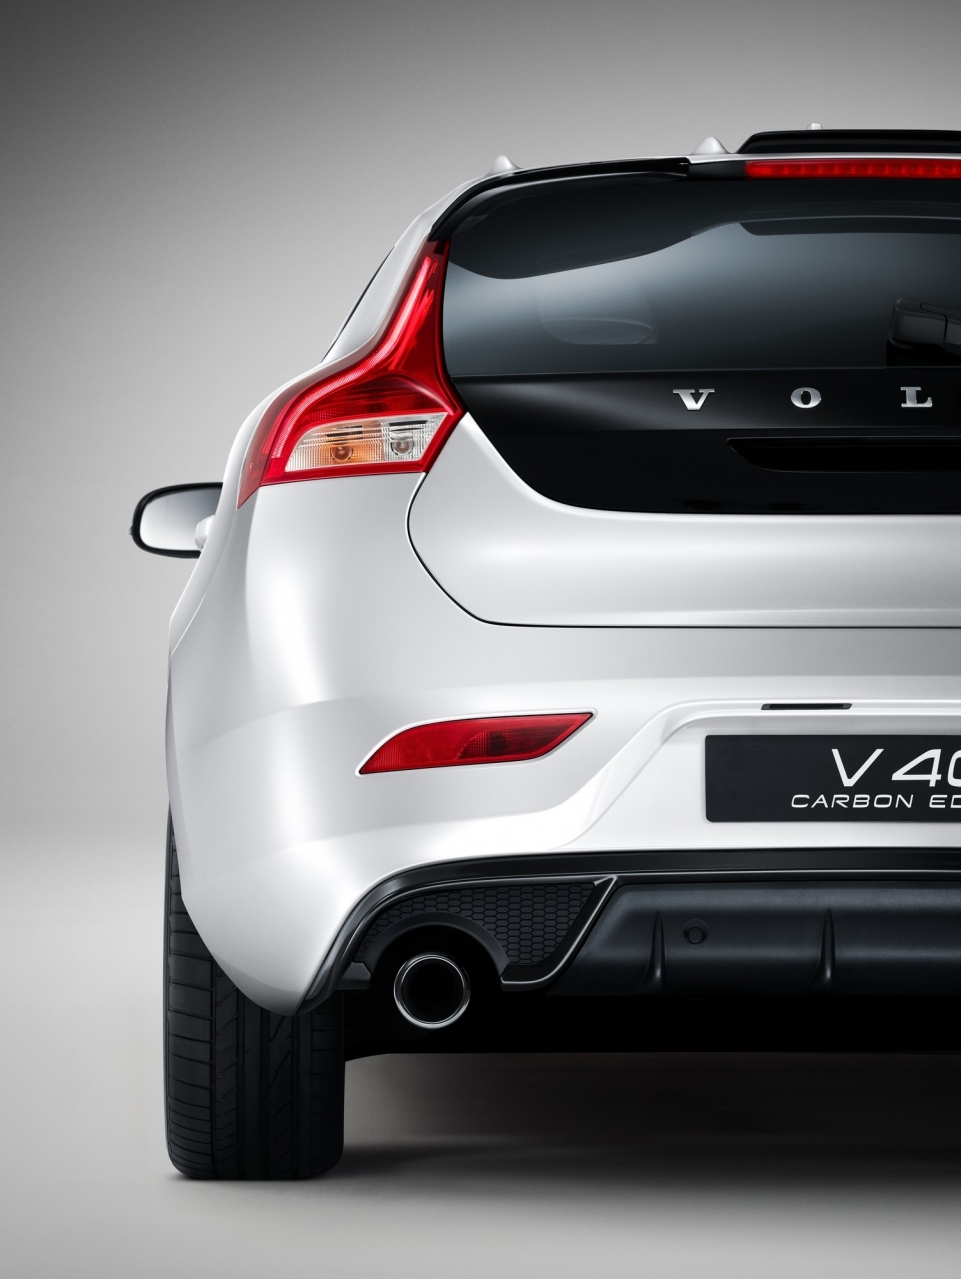 volvo v40 carbon edition une s rie tr s exclusive photo 5 l 39 argus. Black Bedroom Furniture Sets. Home Design Ideas